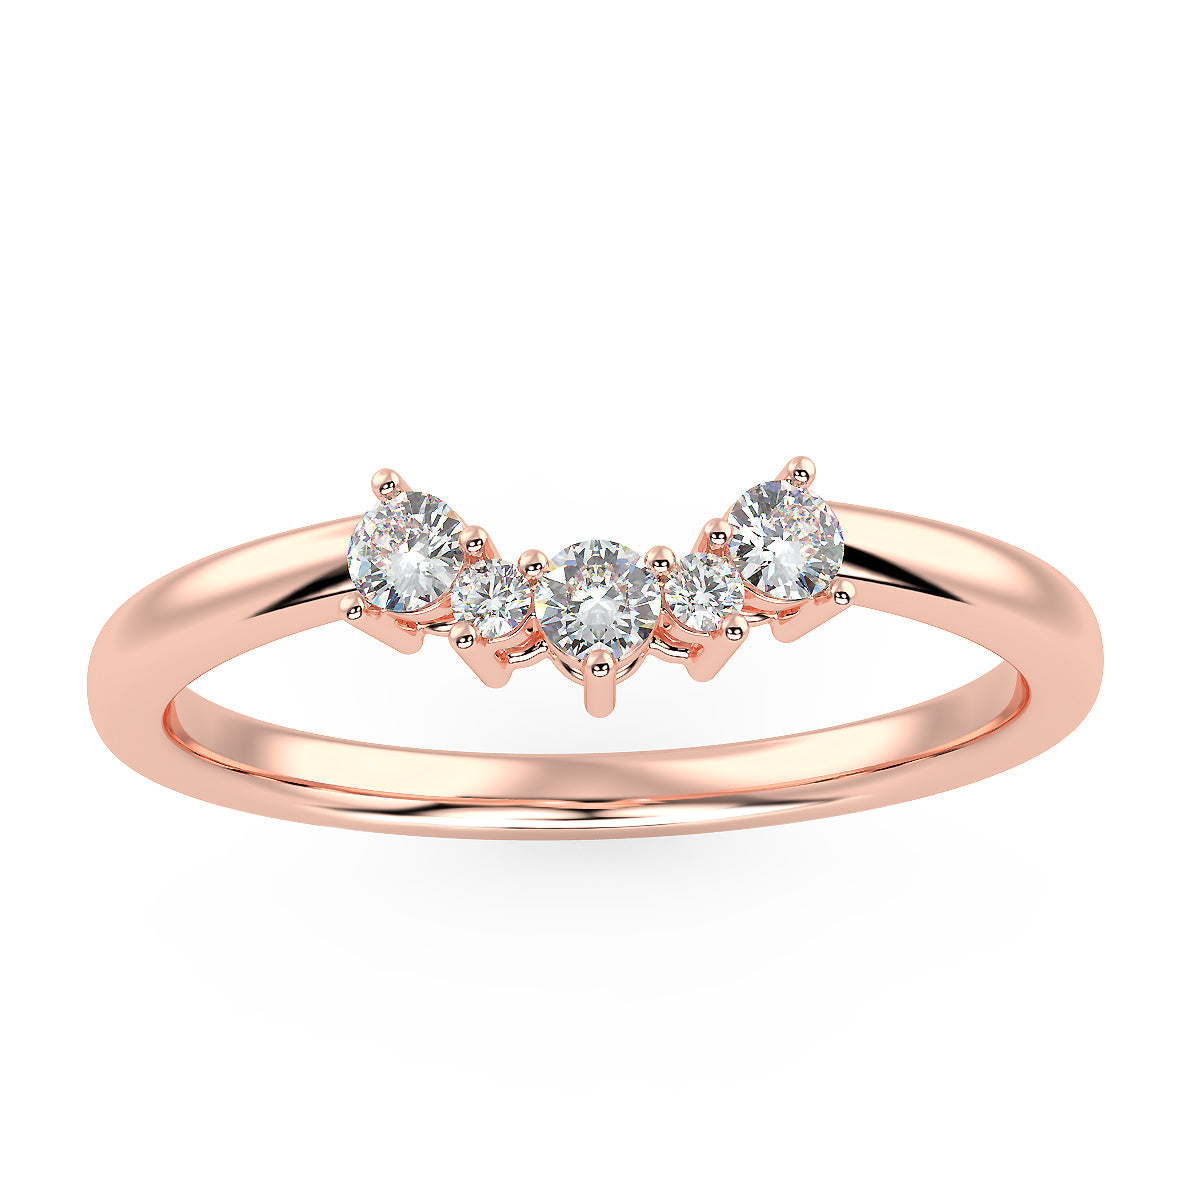 Radiance Band in Rose Gold